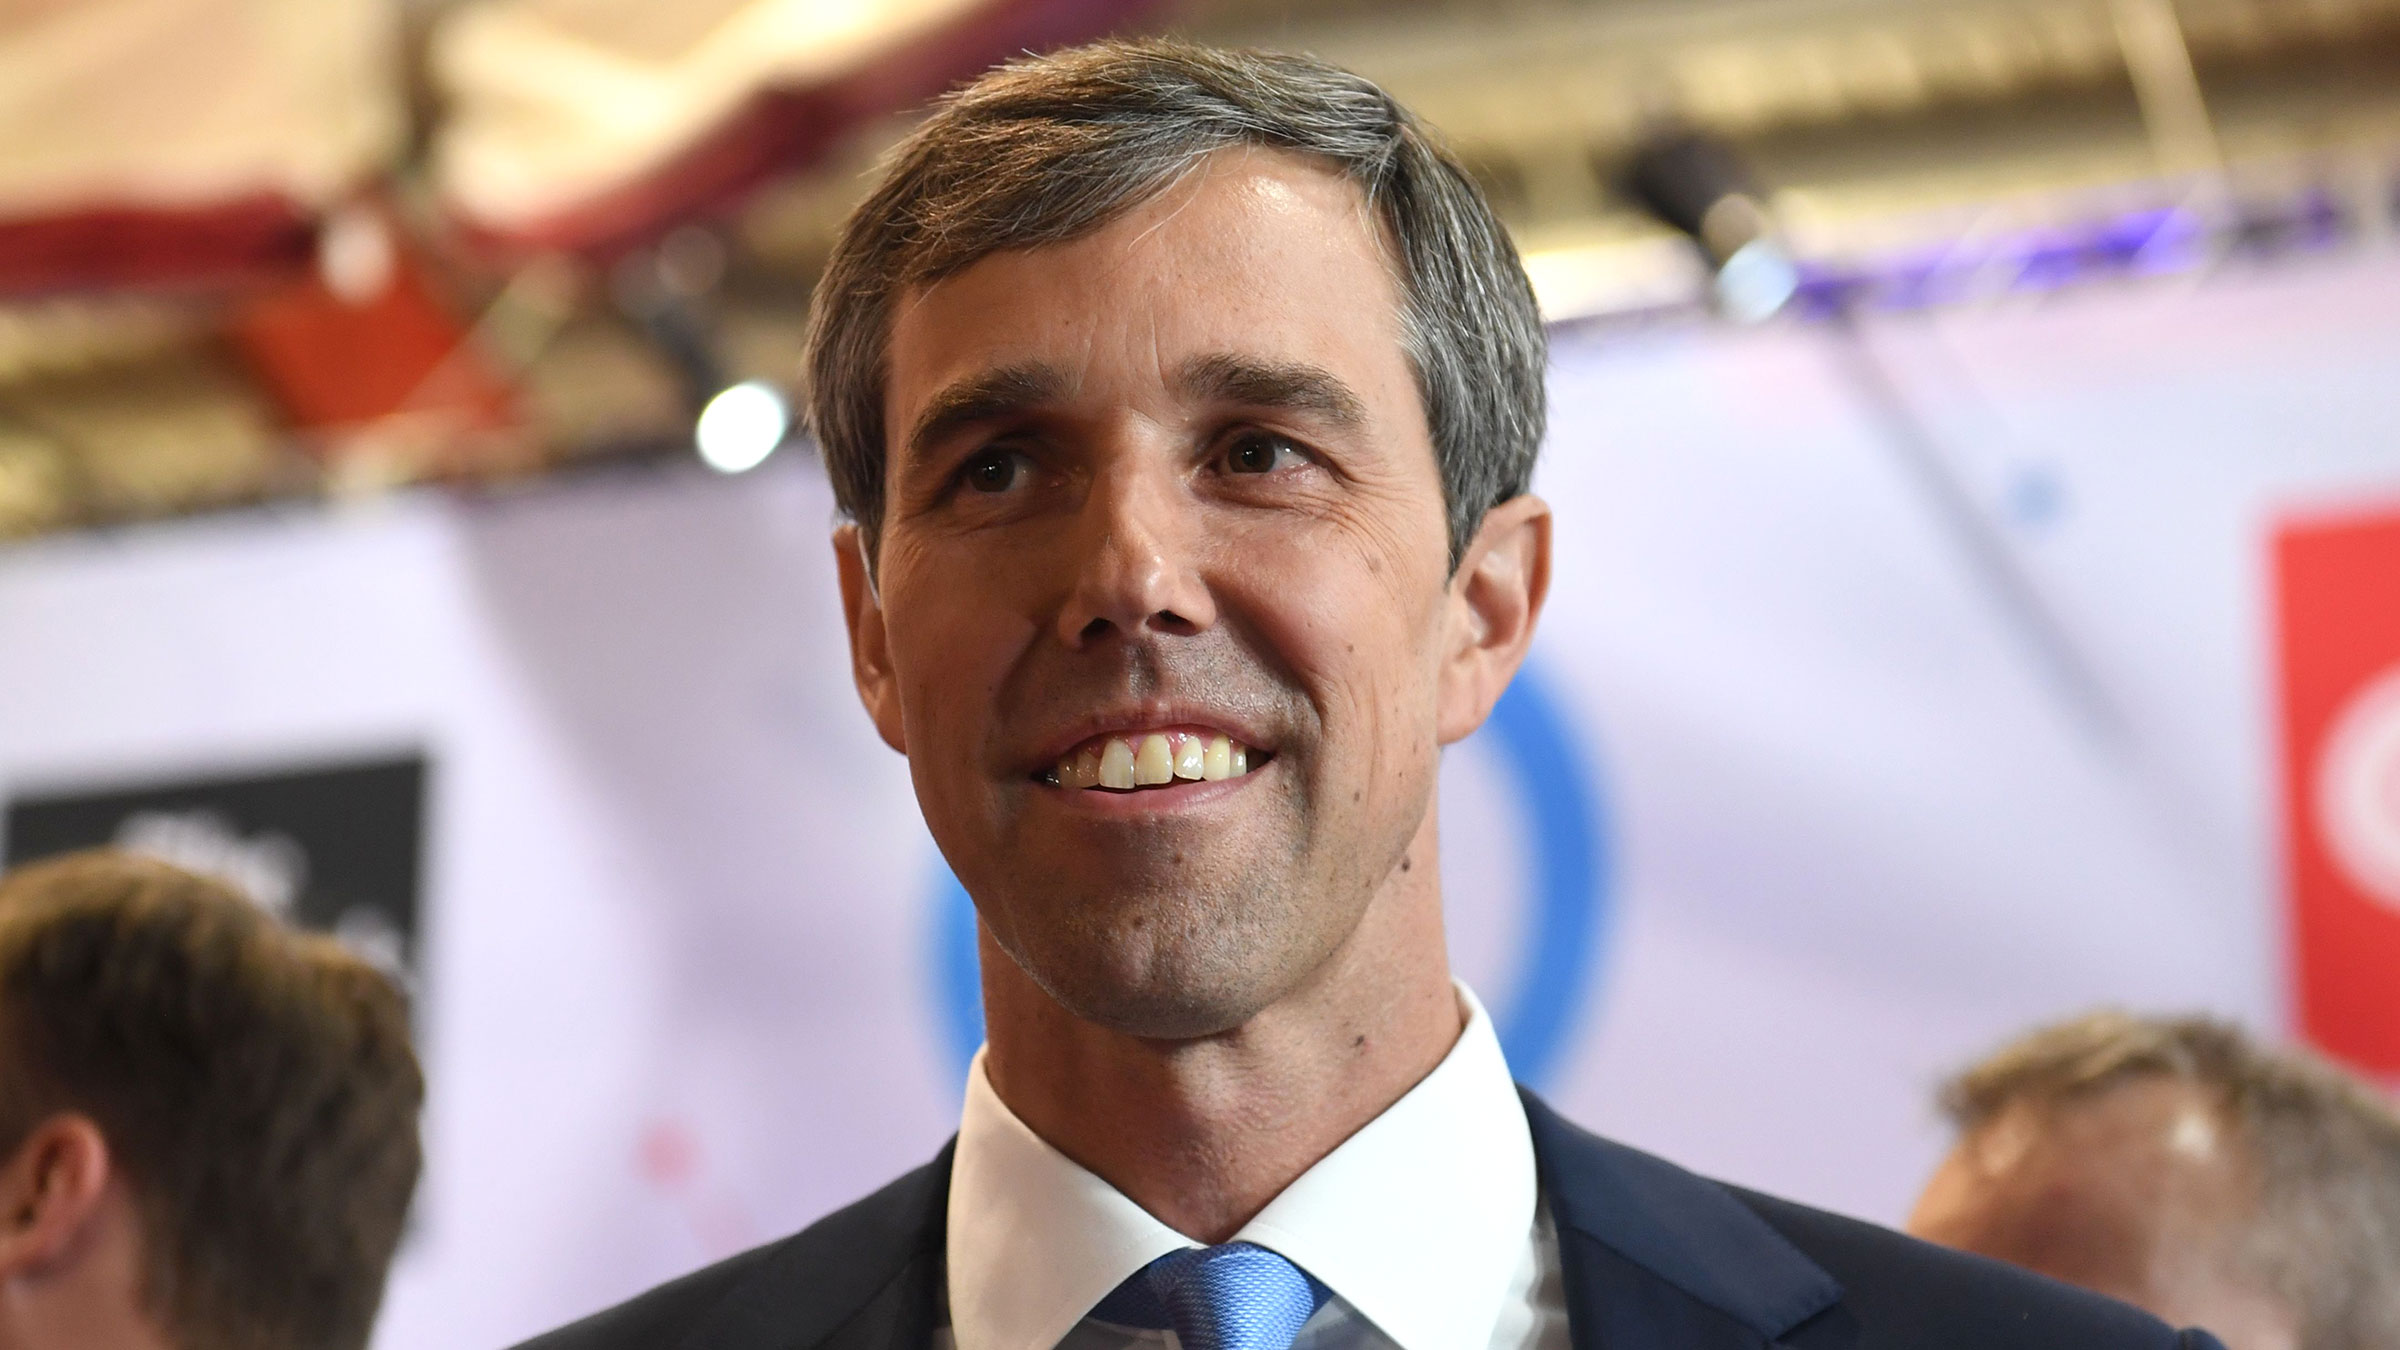 Former Texas Rep. Beto O'Rourke attends a Democratic primary debate at Otterbein University in Westerville, Ohio, on October 15, 2019.